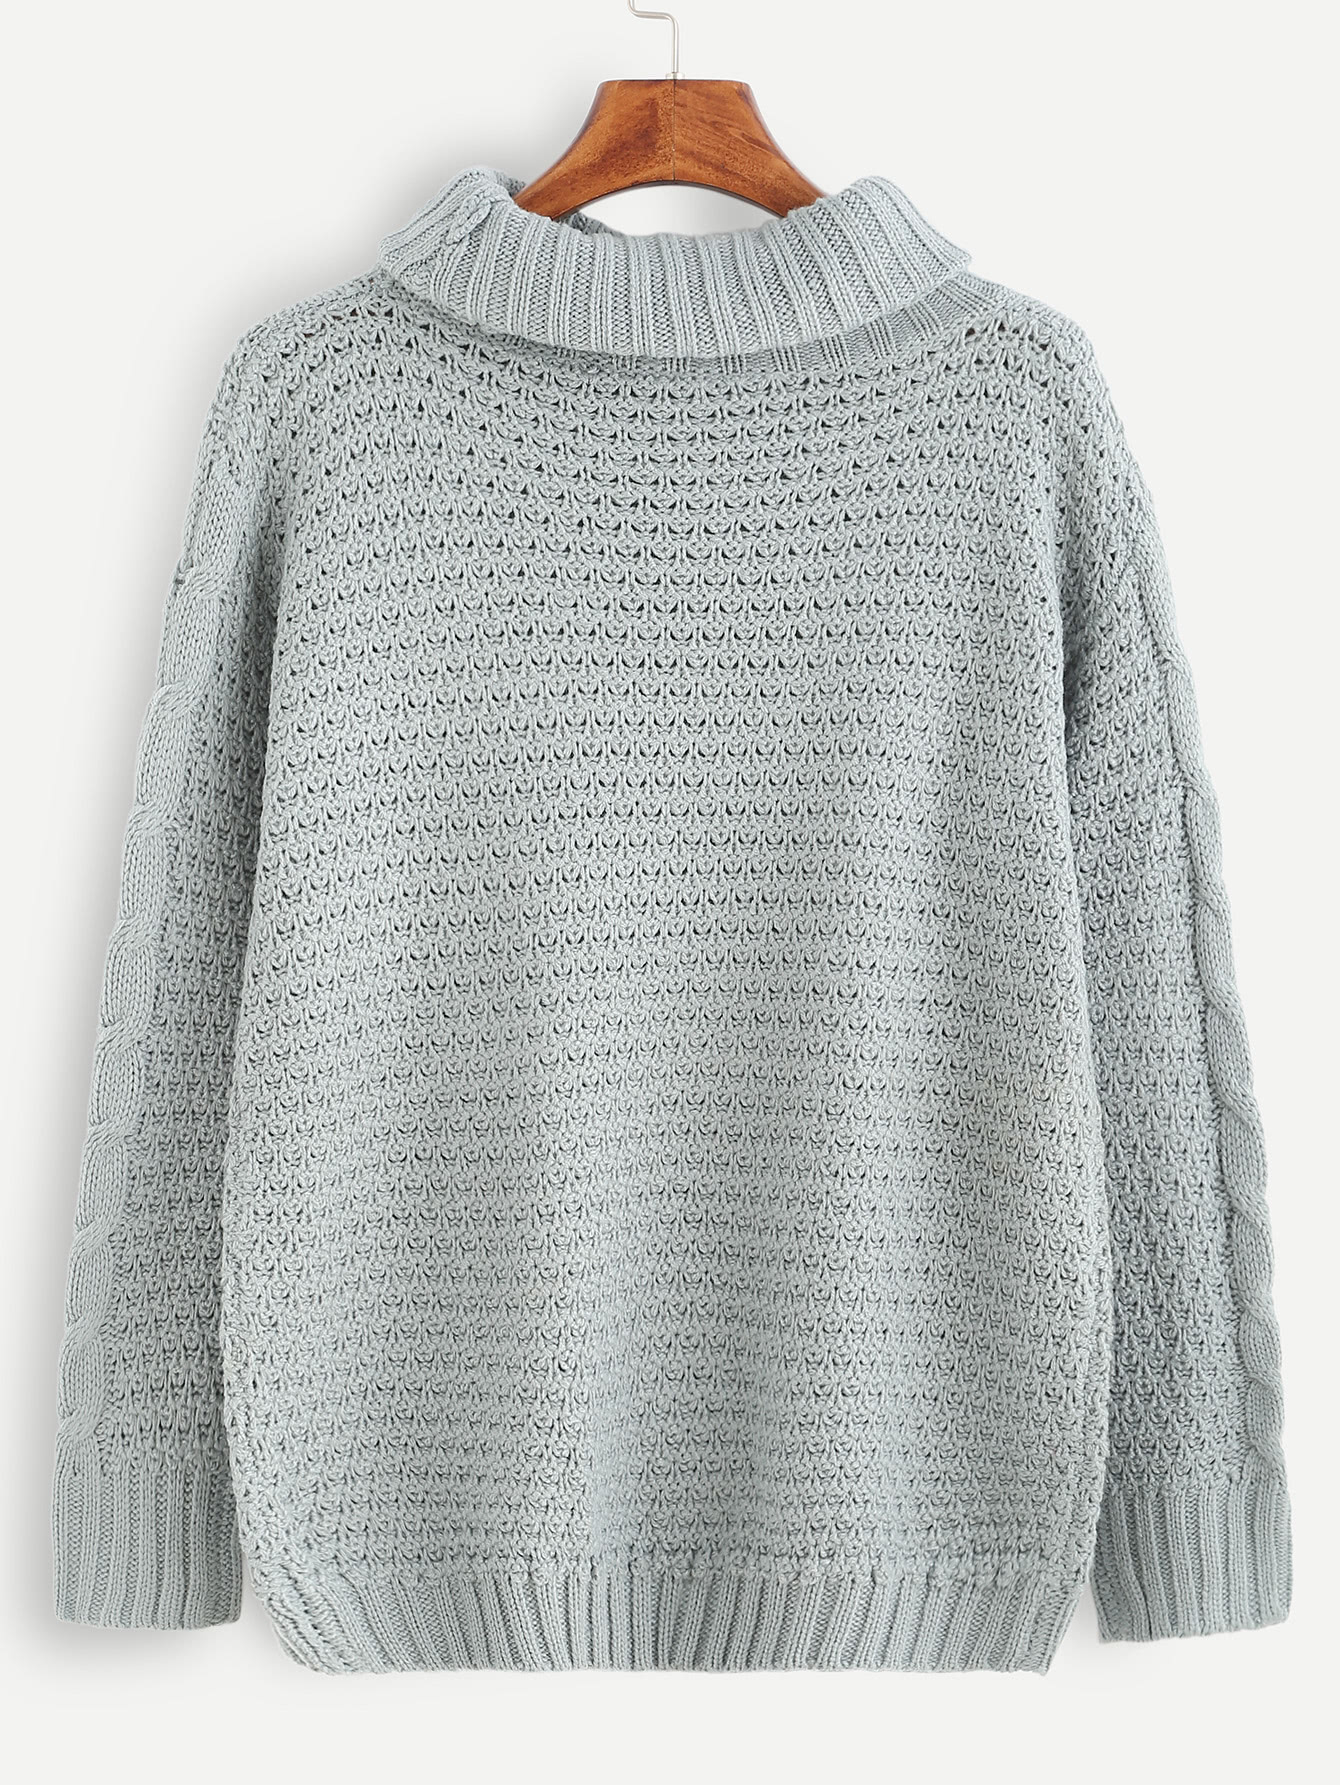 Grey Cable Knit Turtleneck Sweater -SheIn(Sheinside)